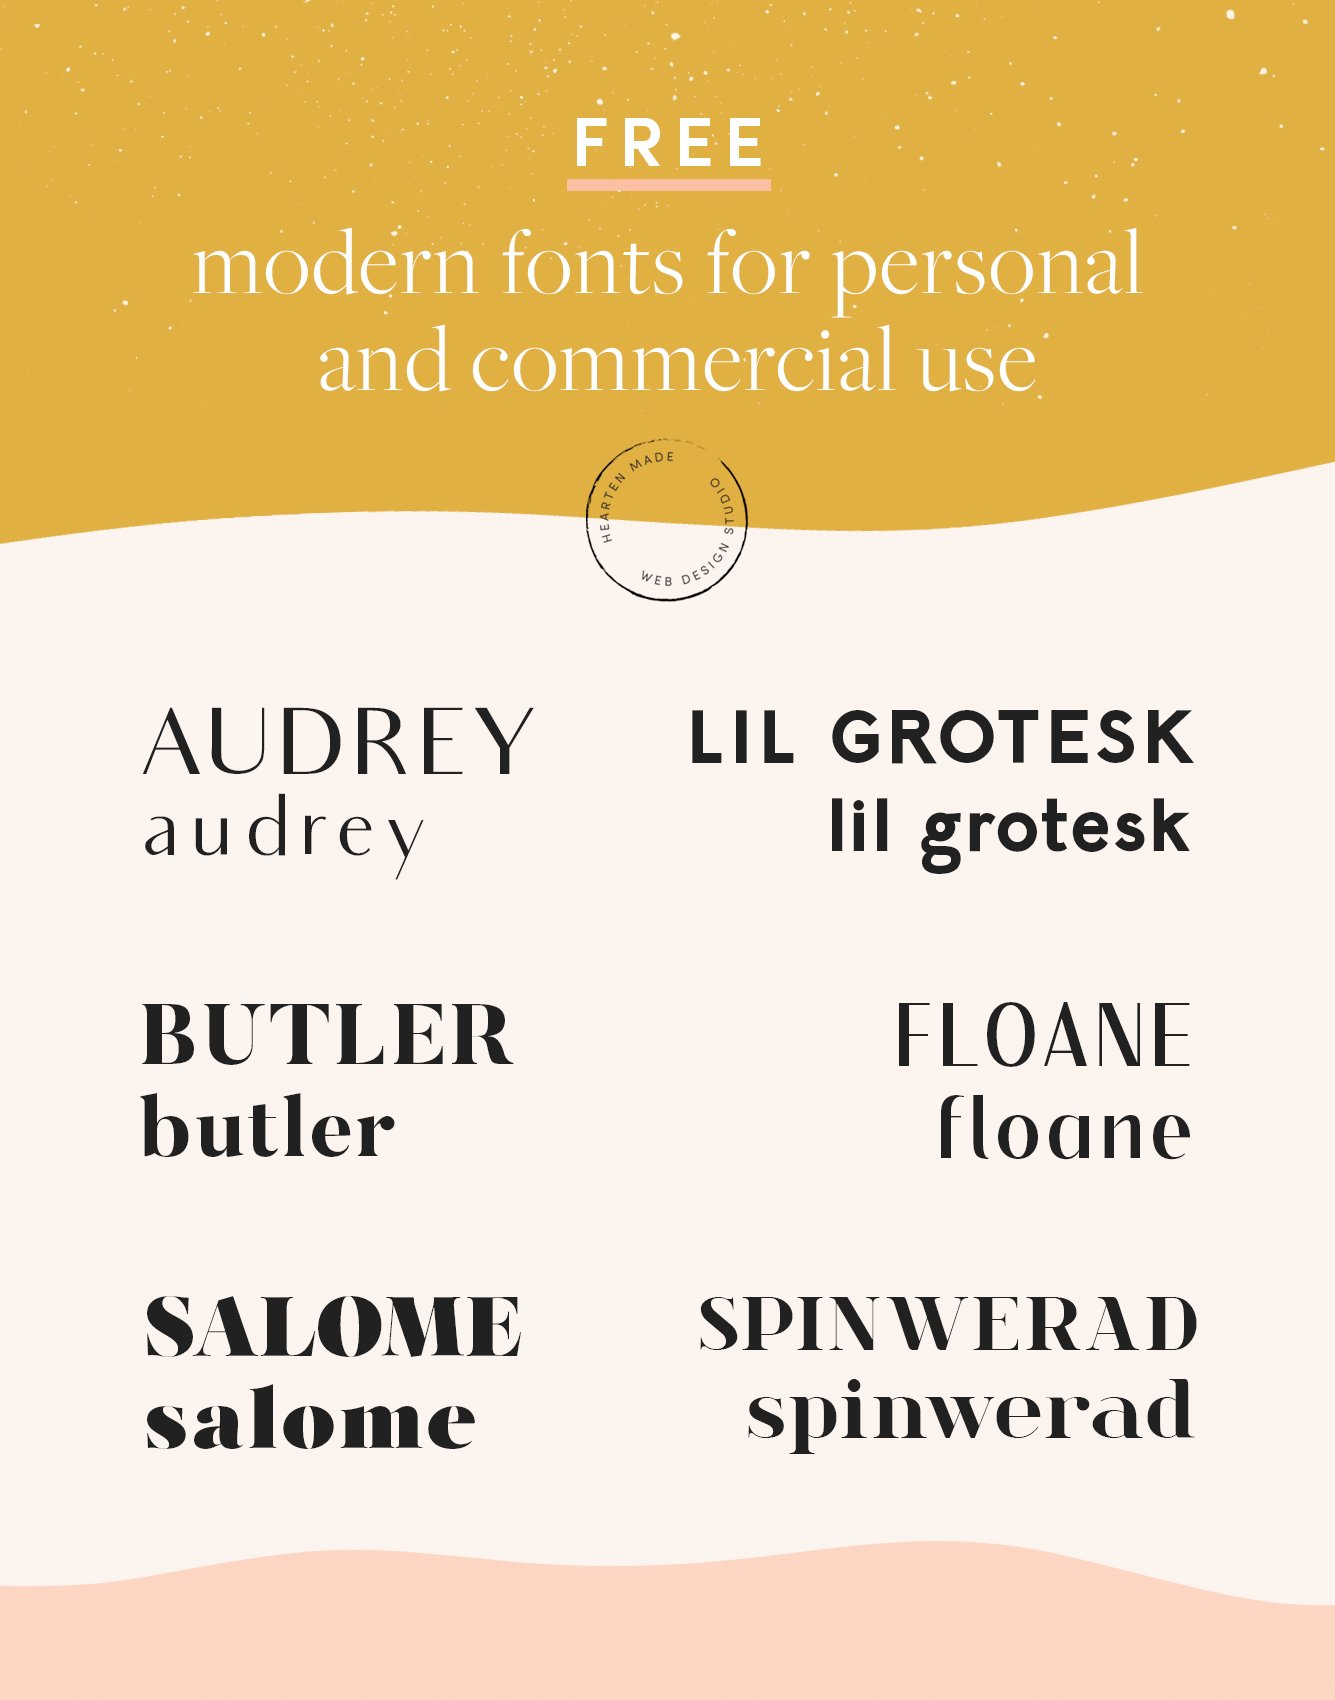 Free Modern Fonts for Commercial Use